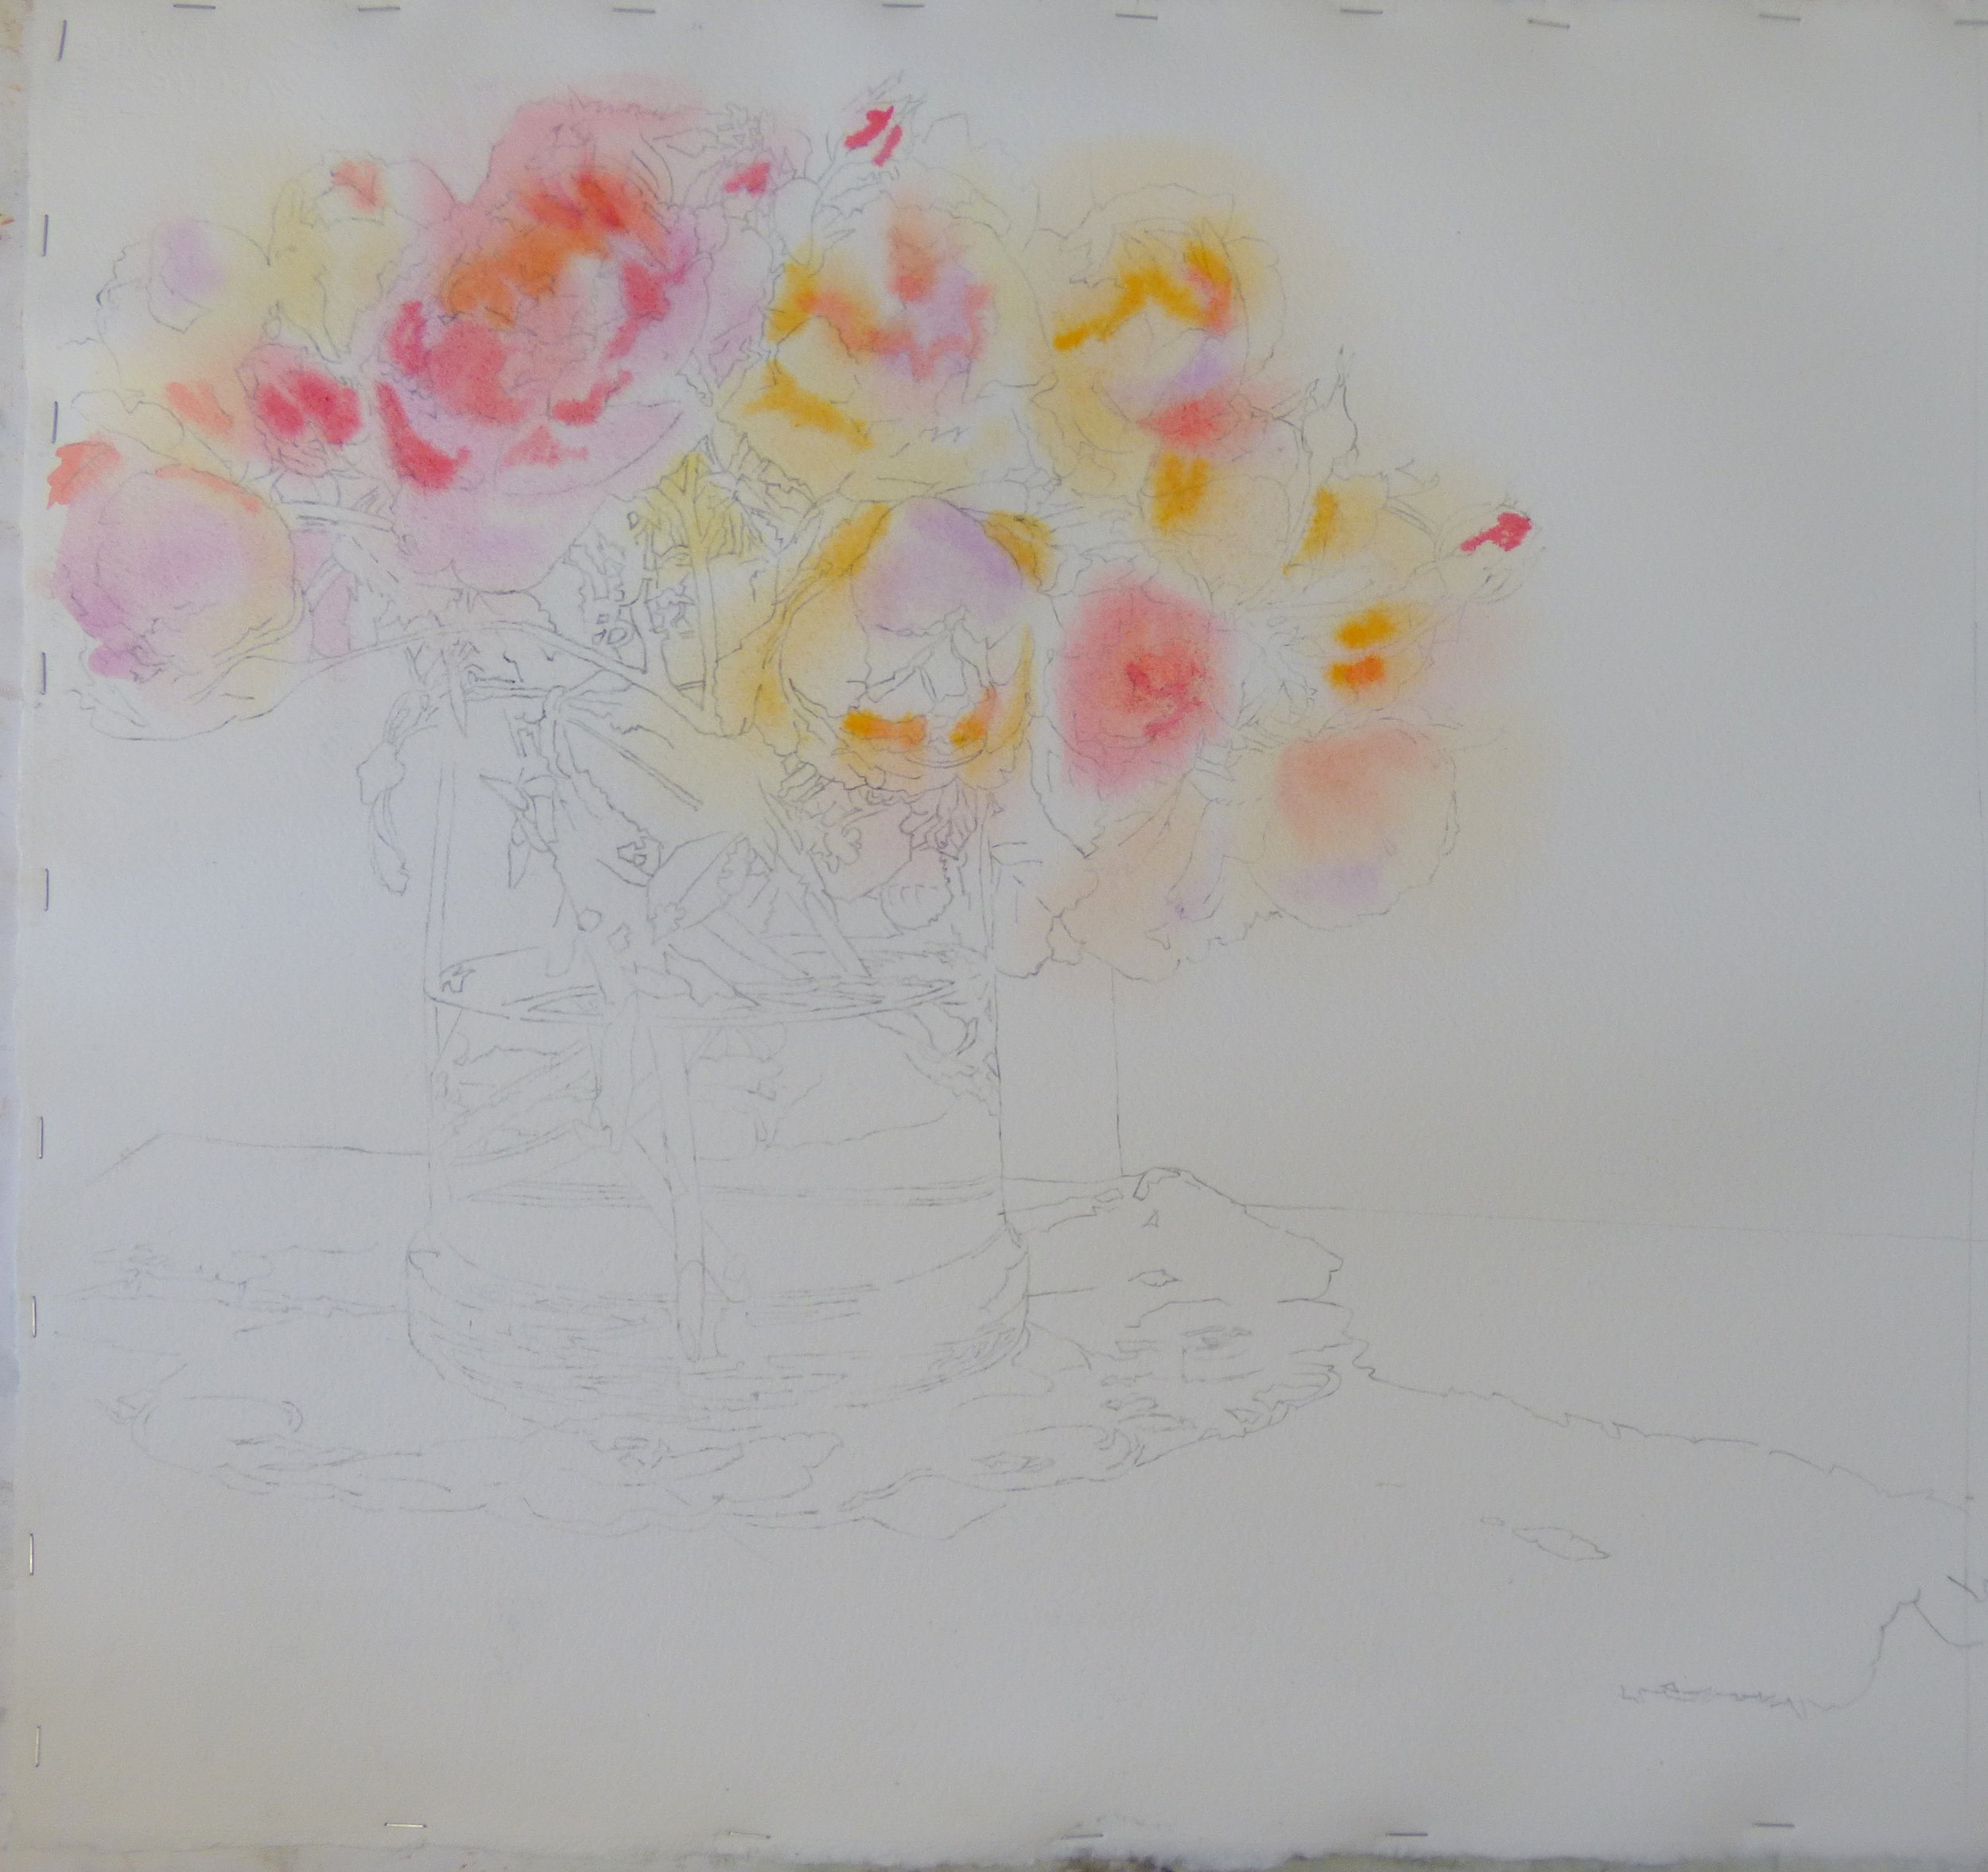 While the paper was wet I dropped in oranges, golds, and pinks into the rose blooms.